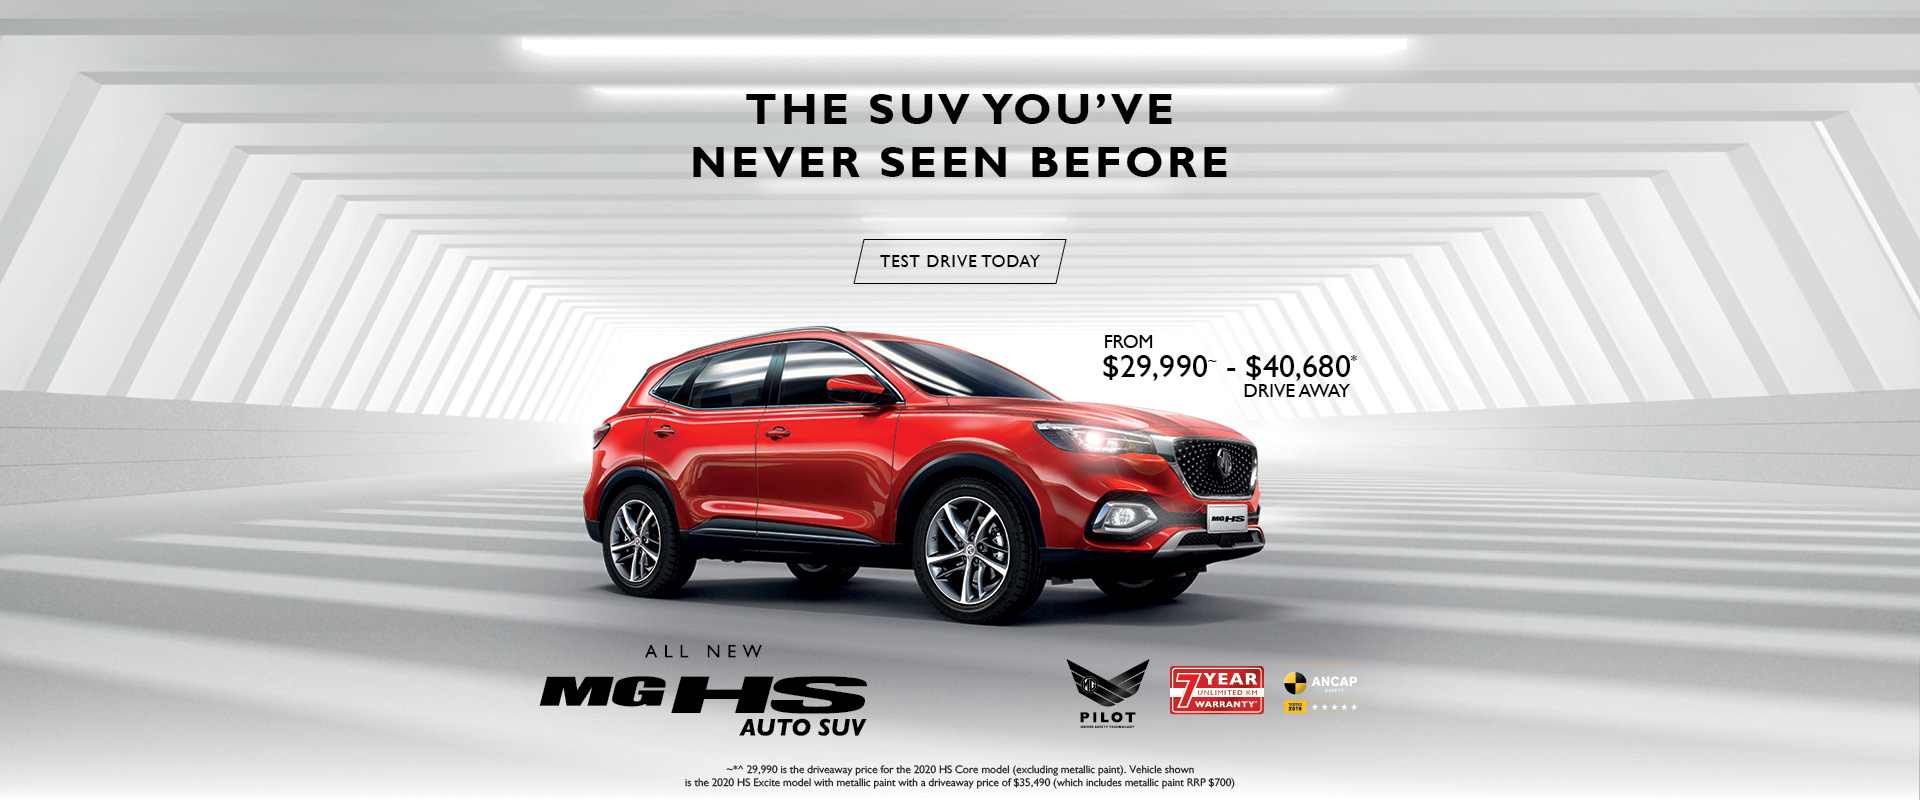 MG HS BEST VALUE TEST DRIVE OFFER - MG PARRAMATTA